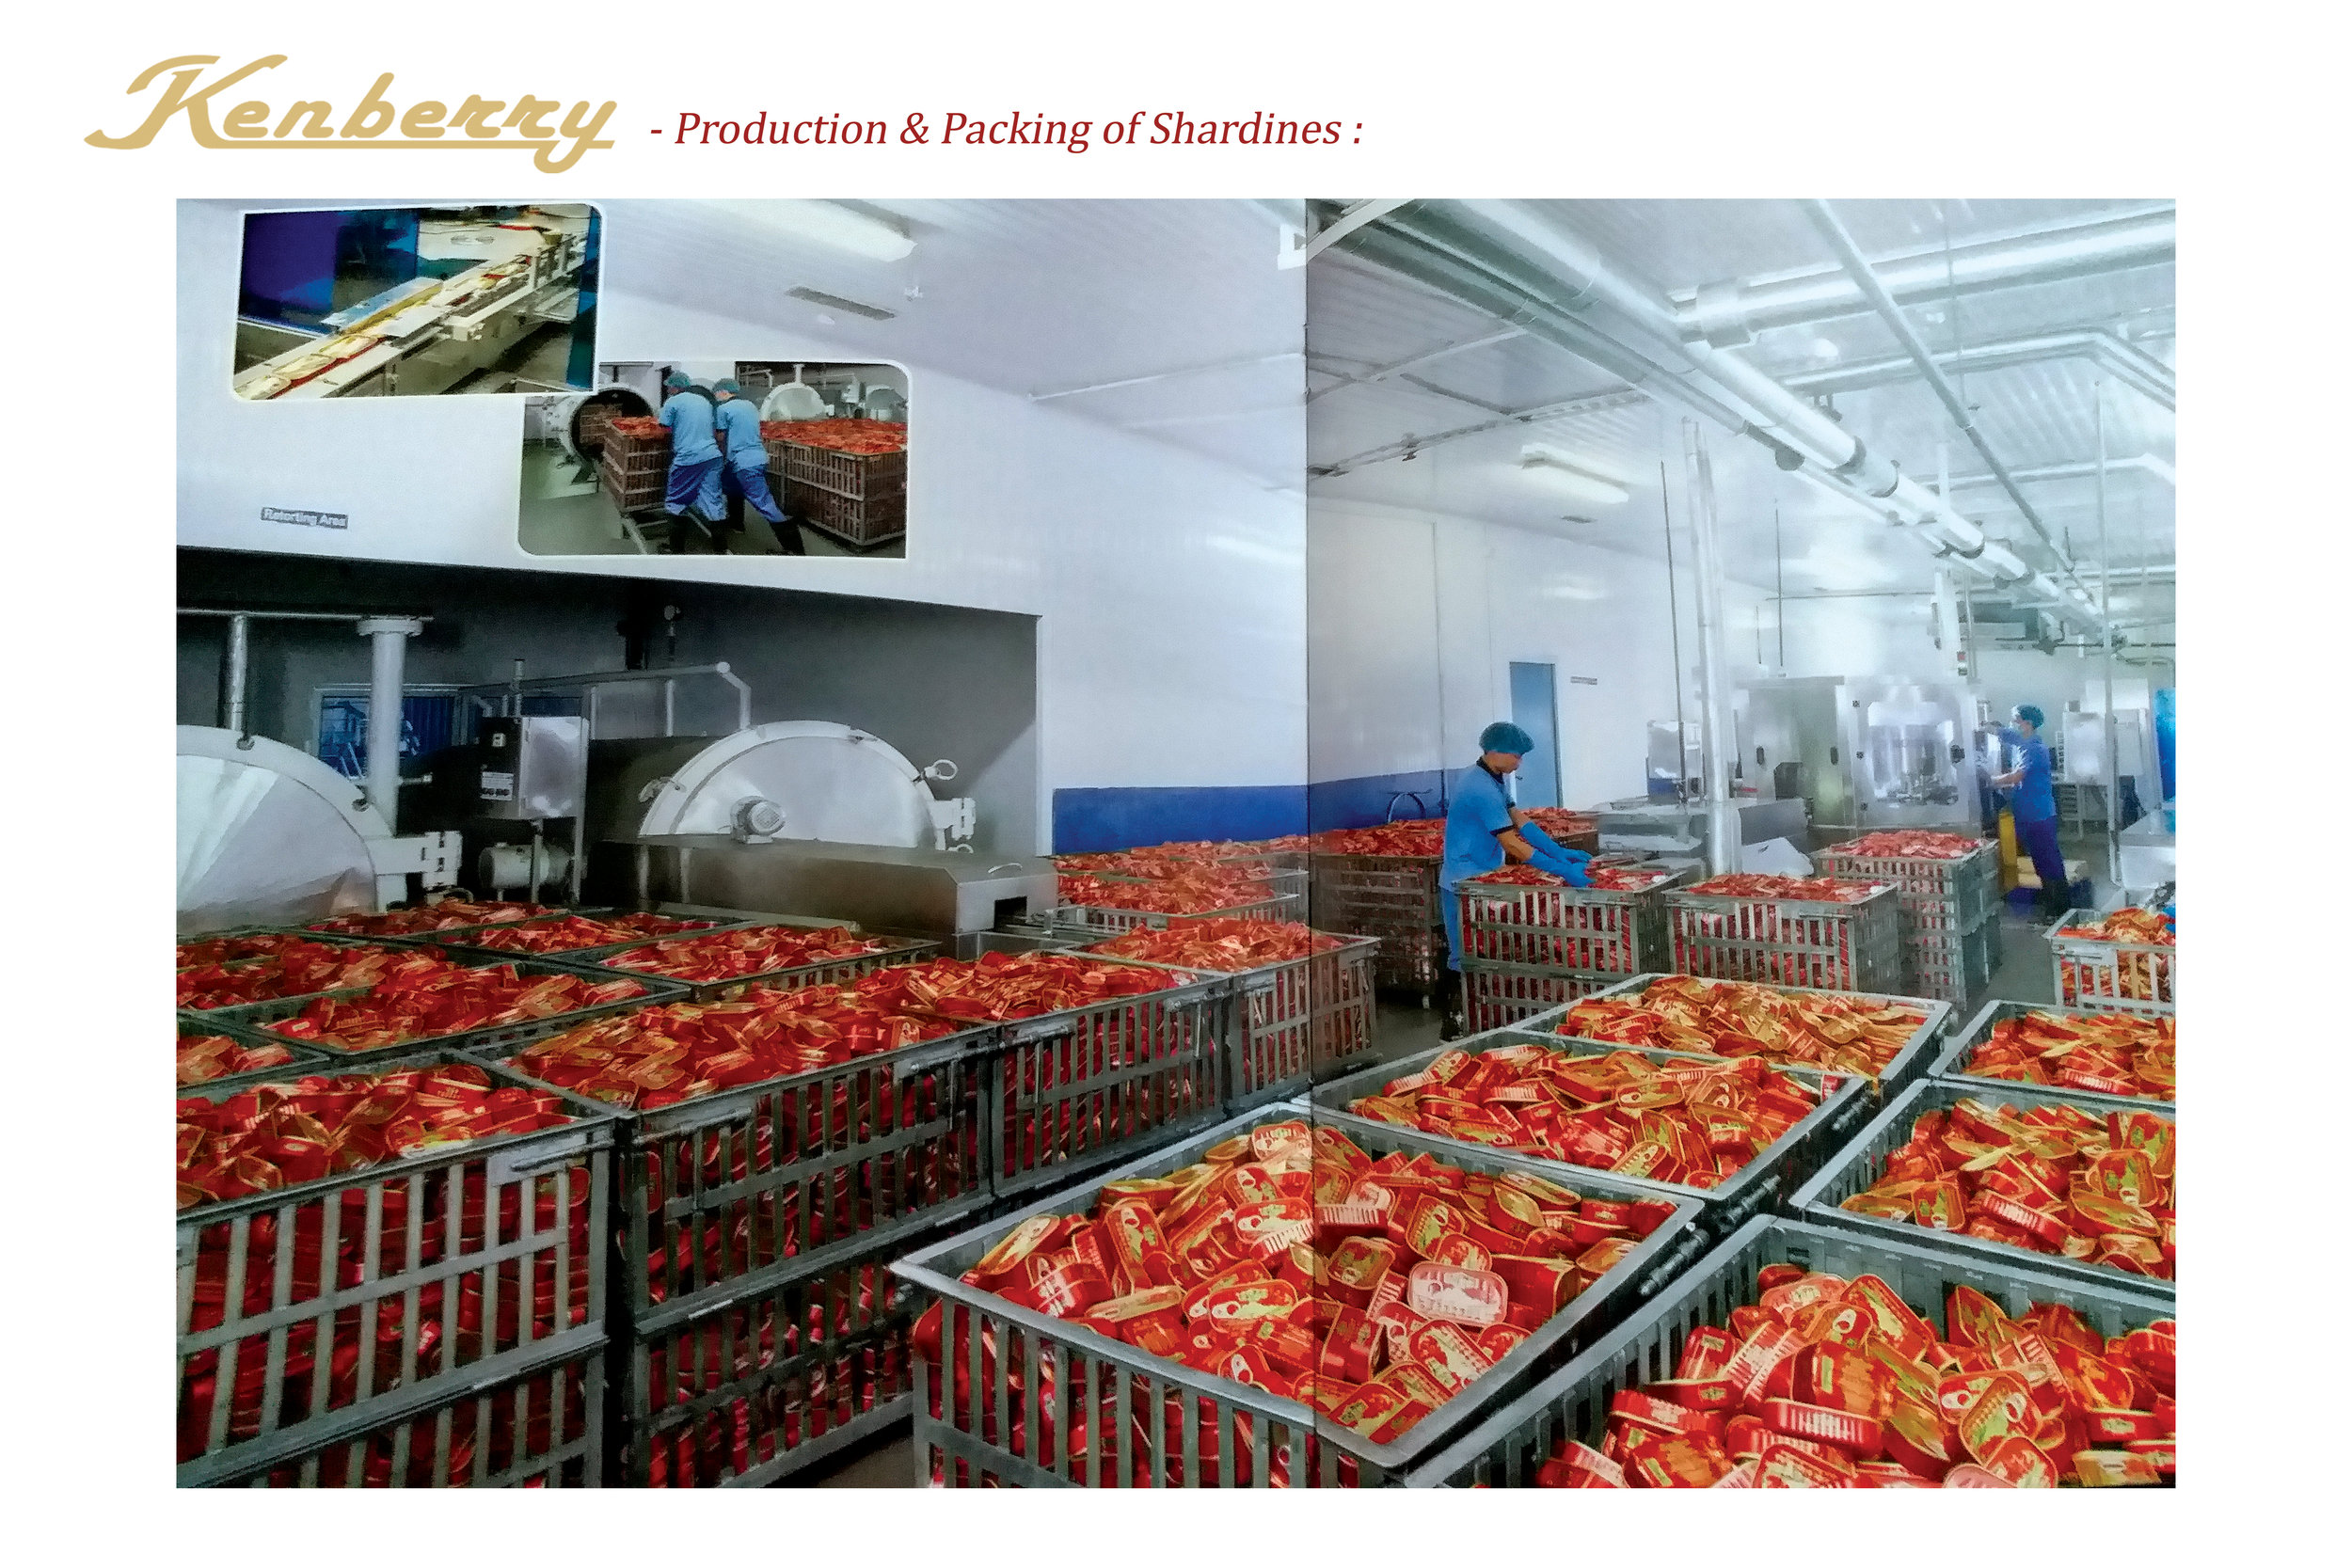 KENBERRY Packaging Unit